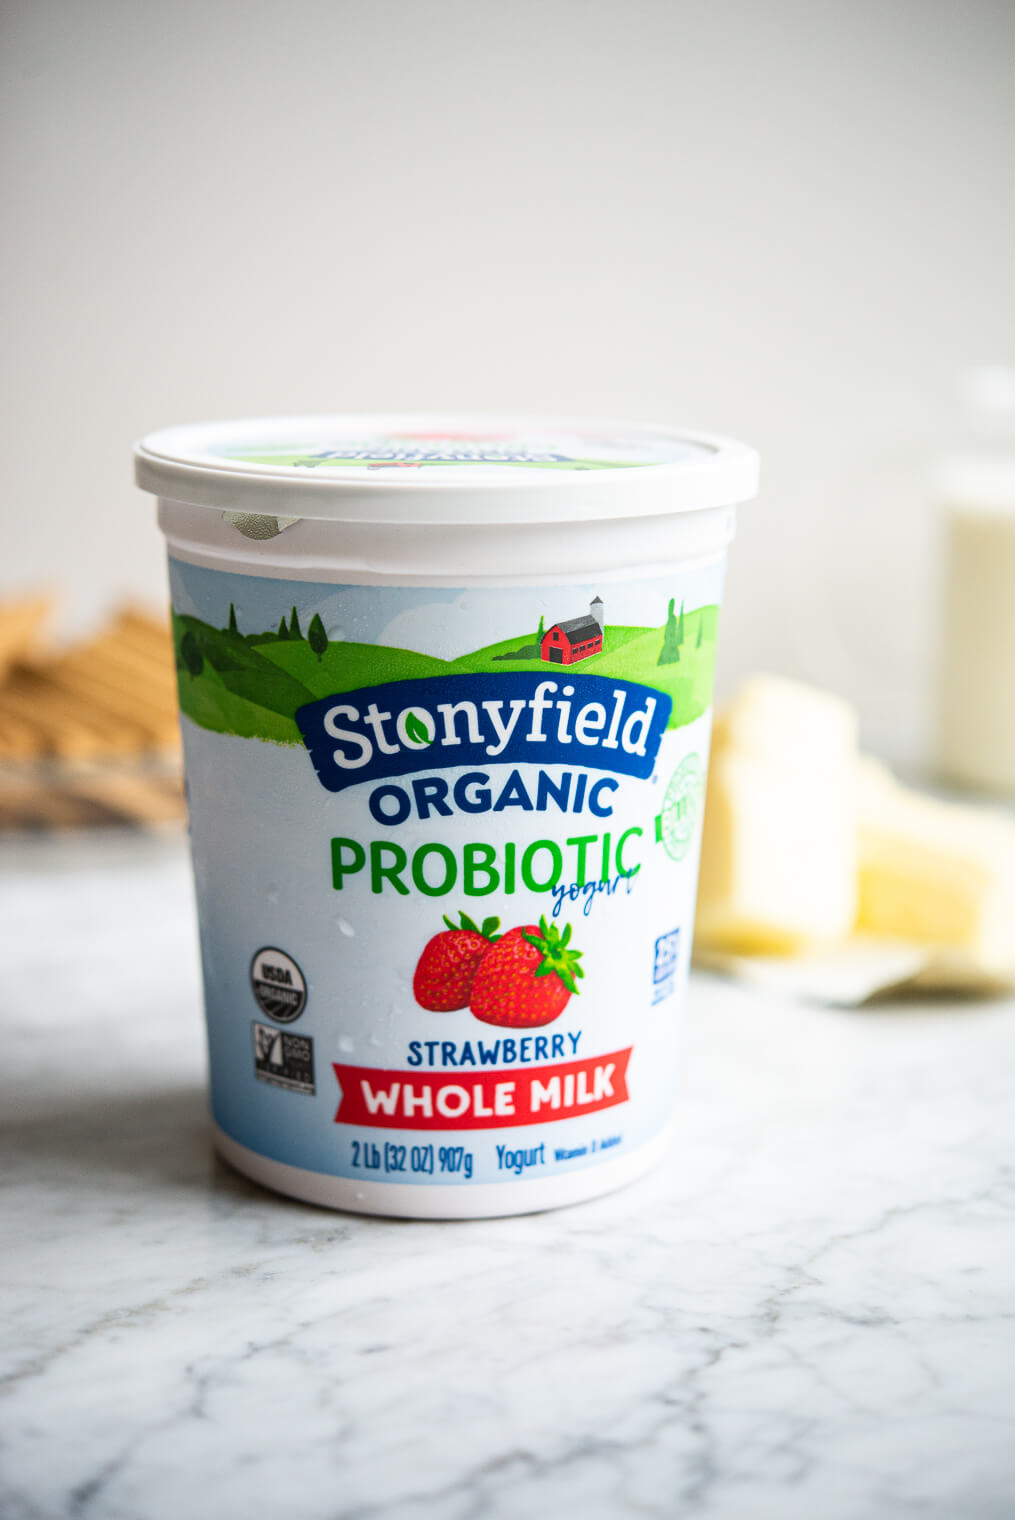 stonyfield organic strawberry whole milk yogurt